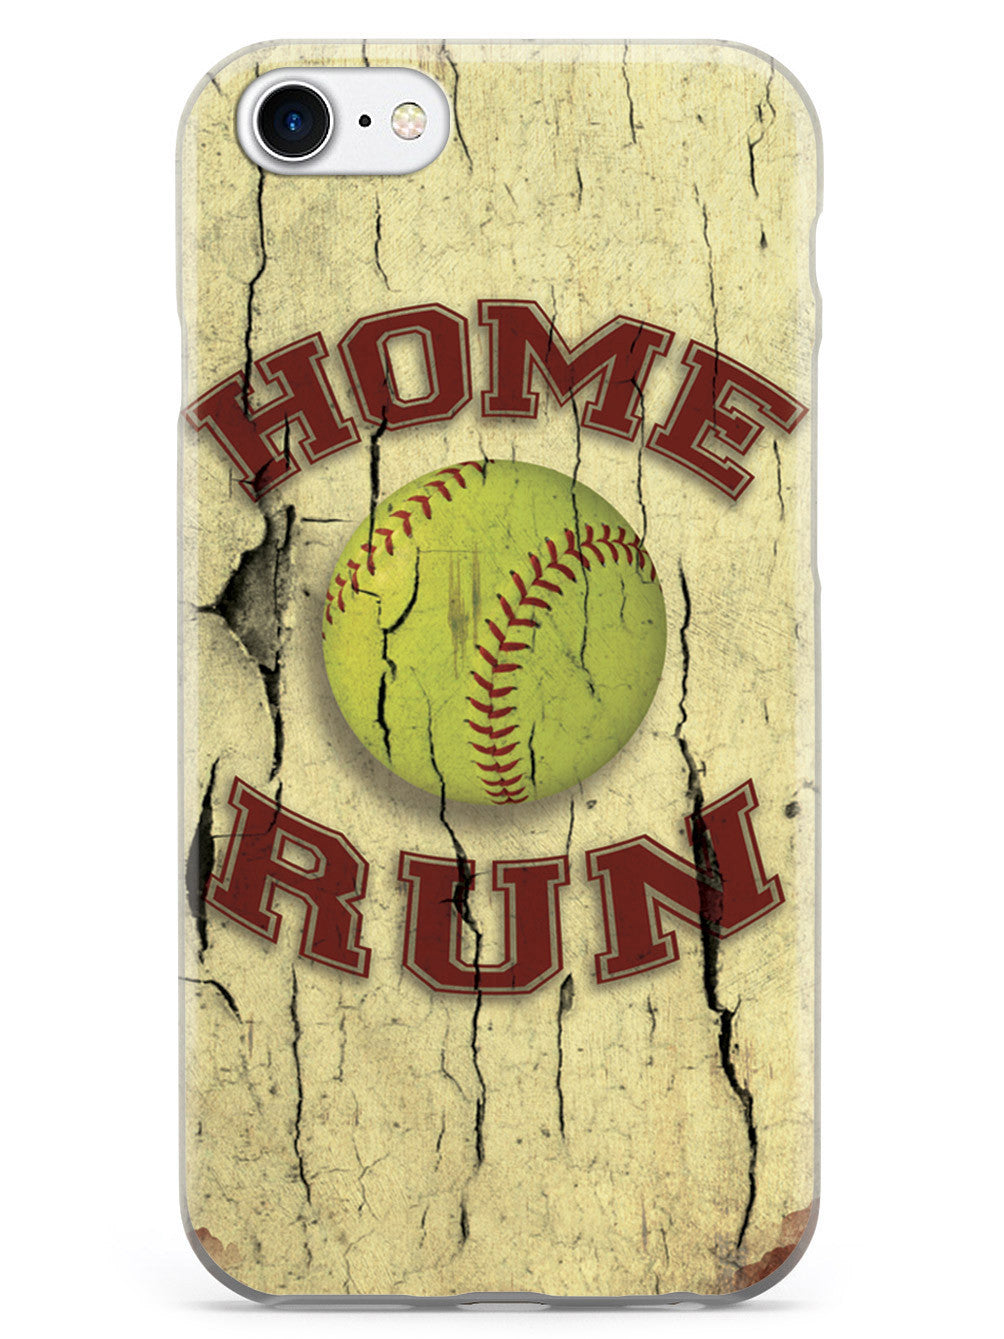 Home Run - Softball Case